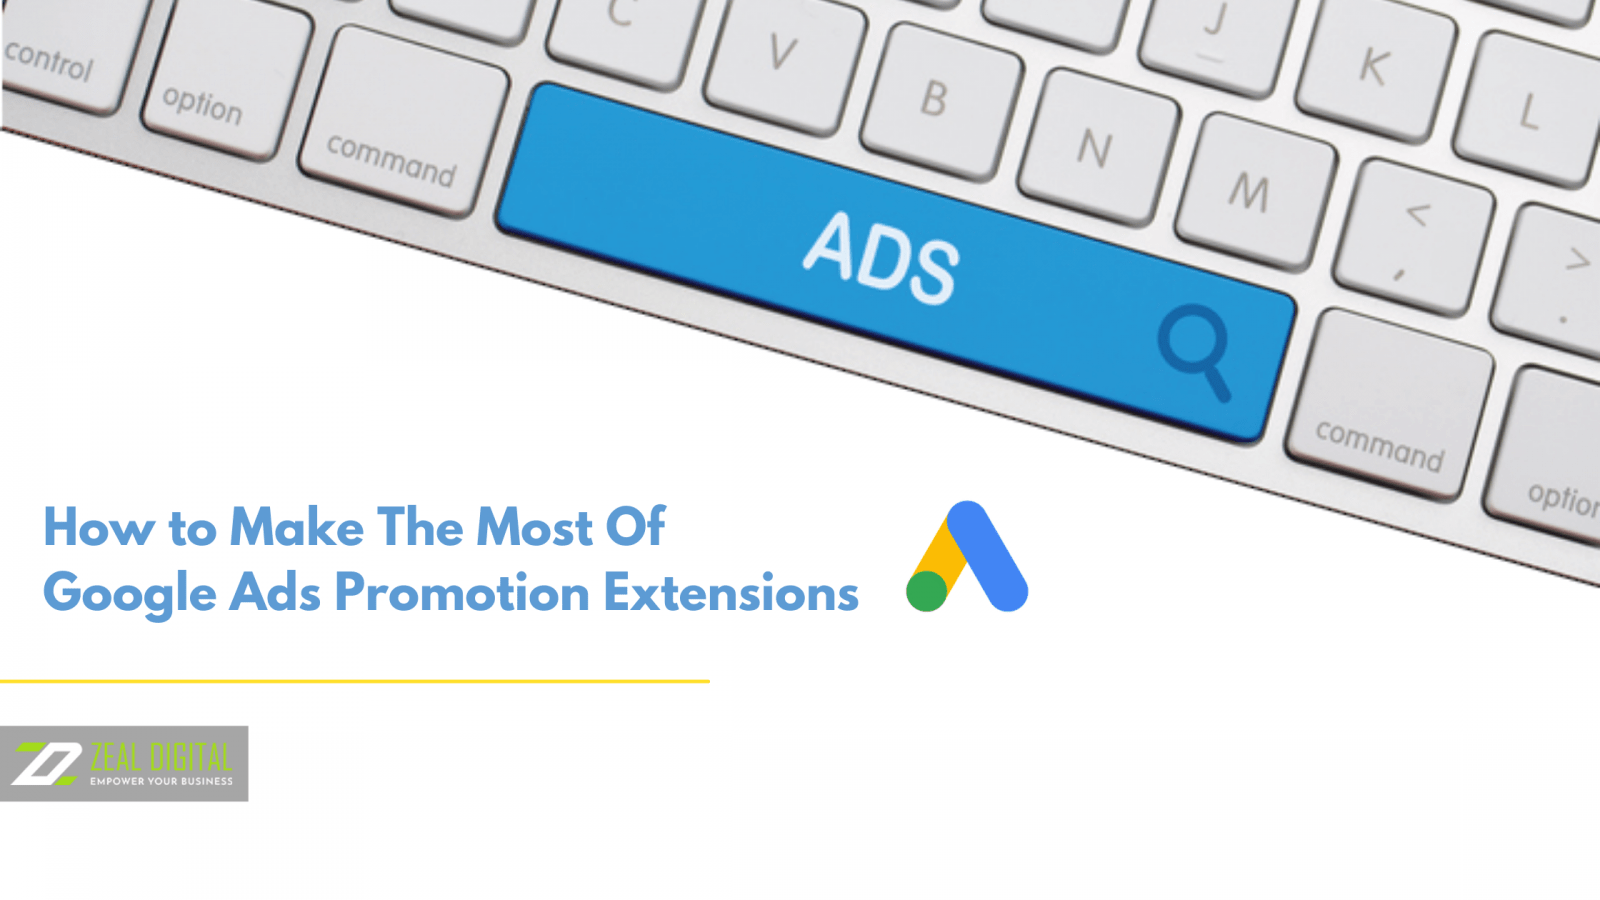 How to Make The Most Of Google Ads Promotion Extensions